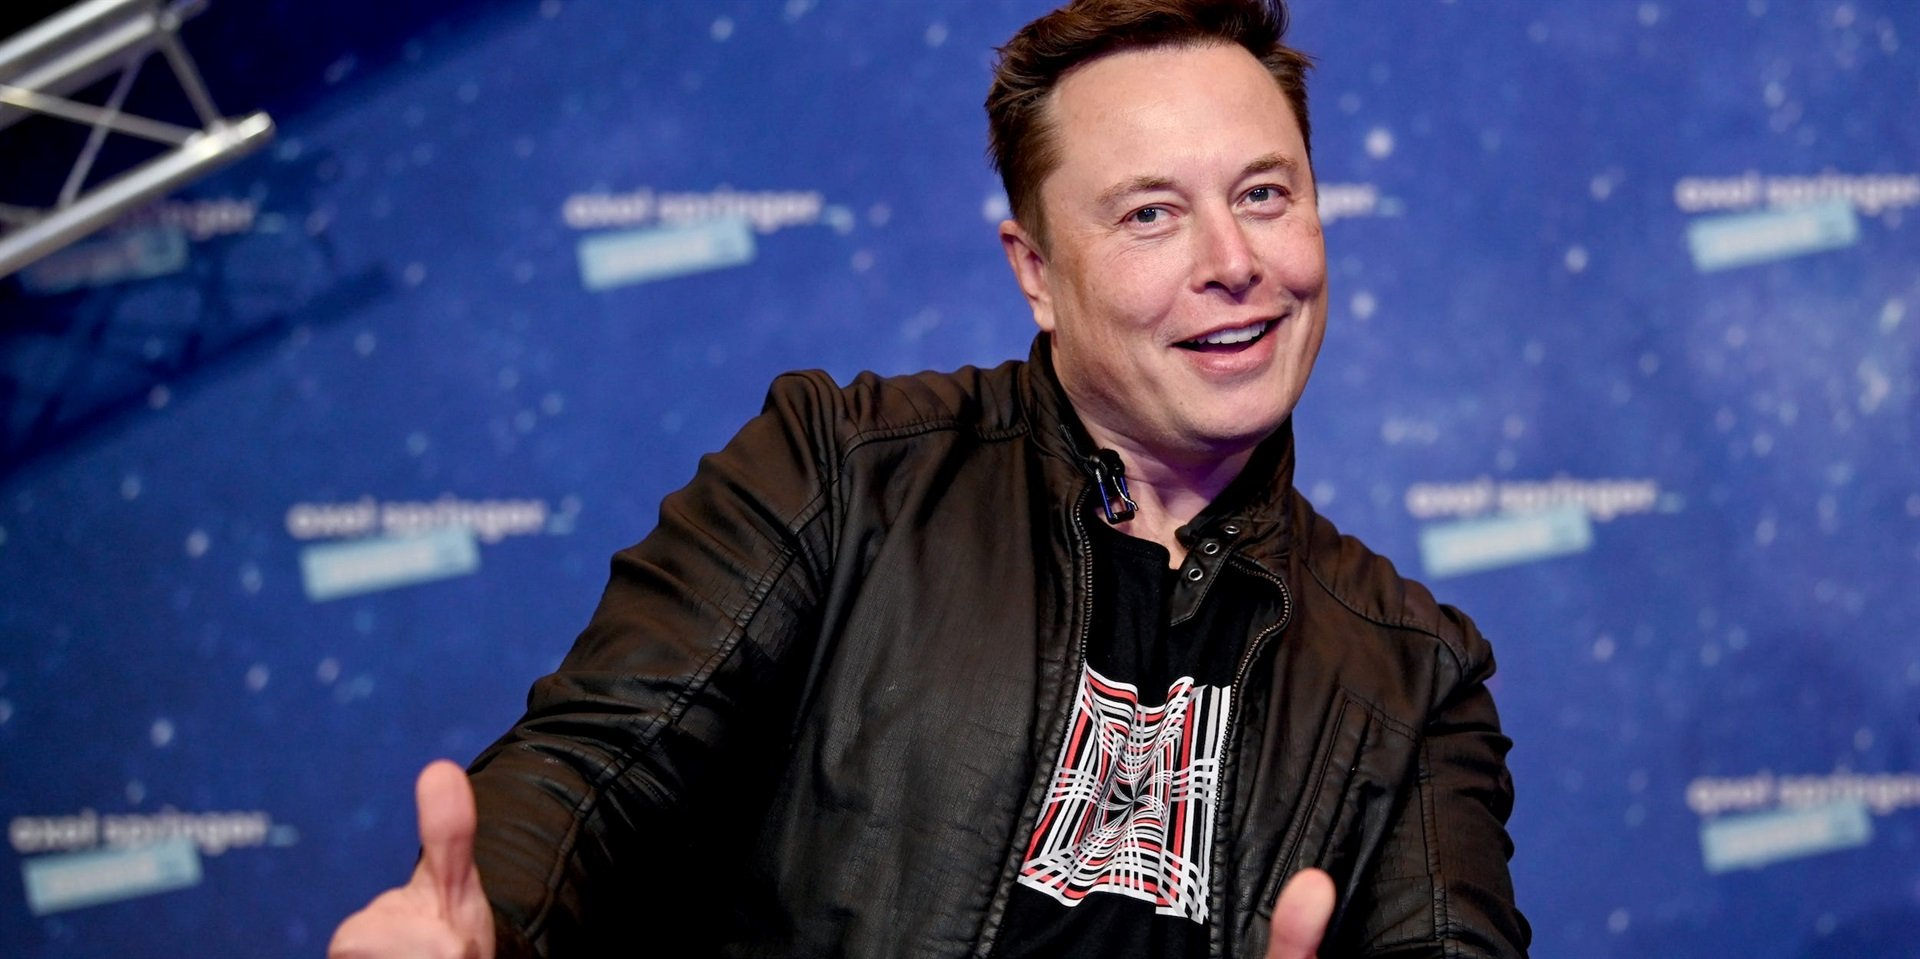 Here's what 6 crypto experts said about Tesla's $1.5 billion investment into bitcoin